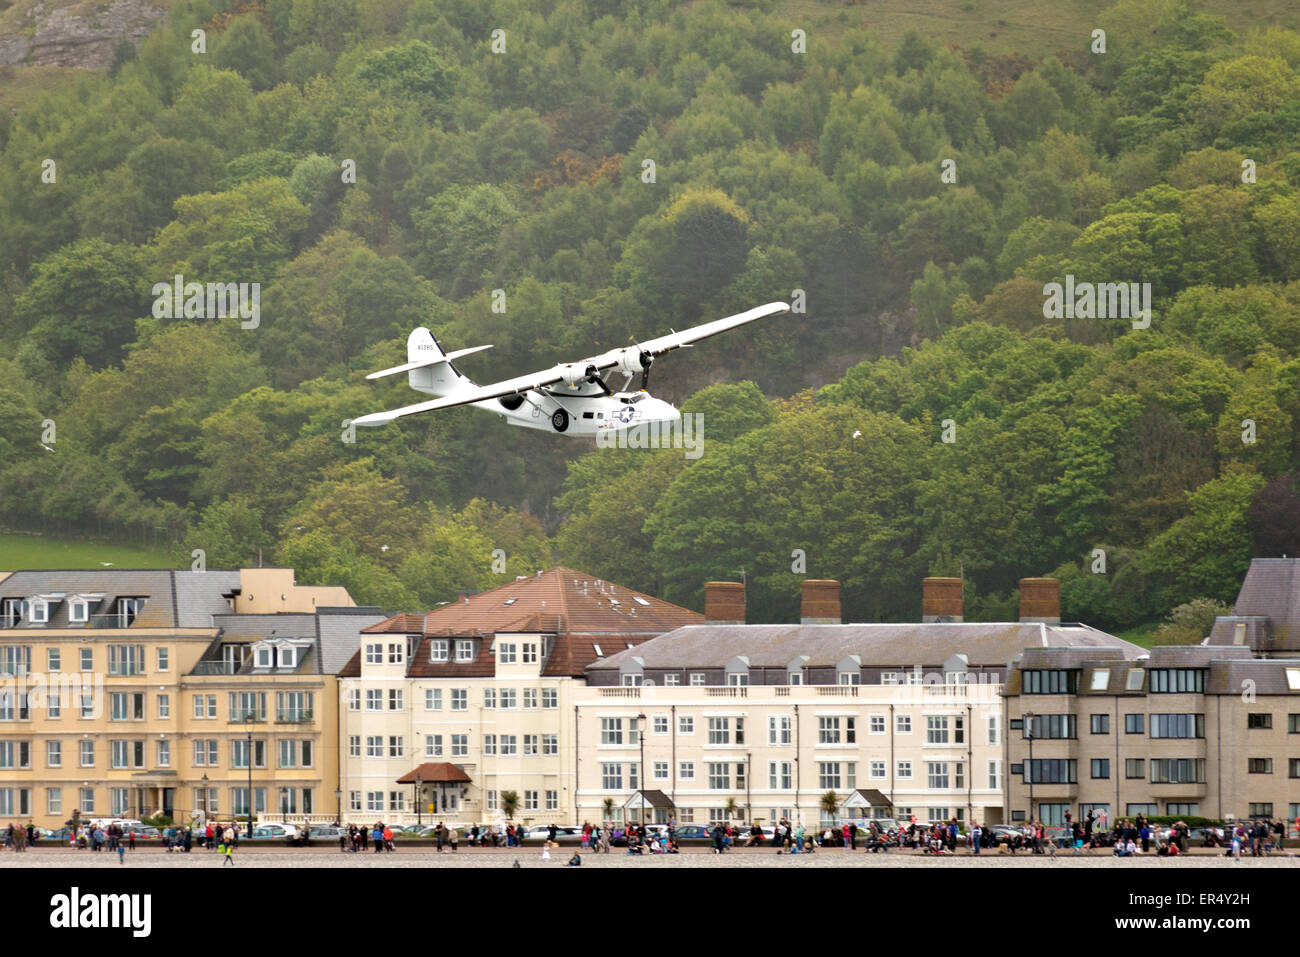 C Fnjf High Resolution Stock Photography And Images Alamy